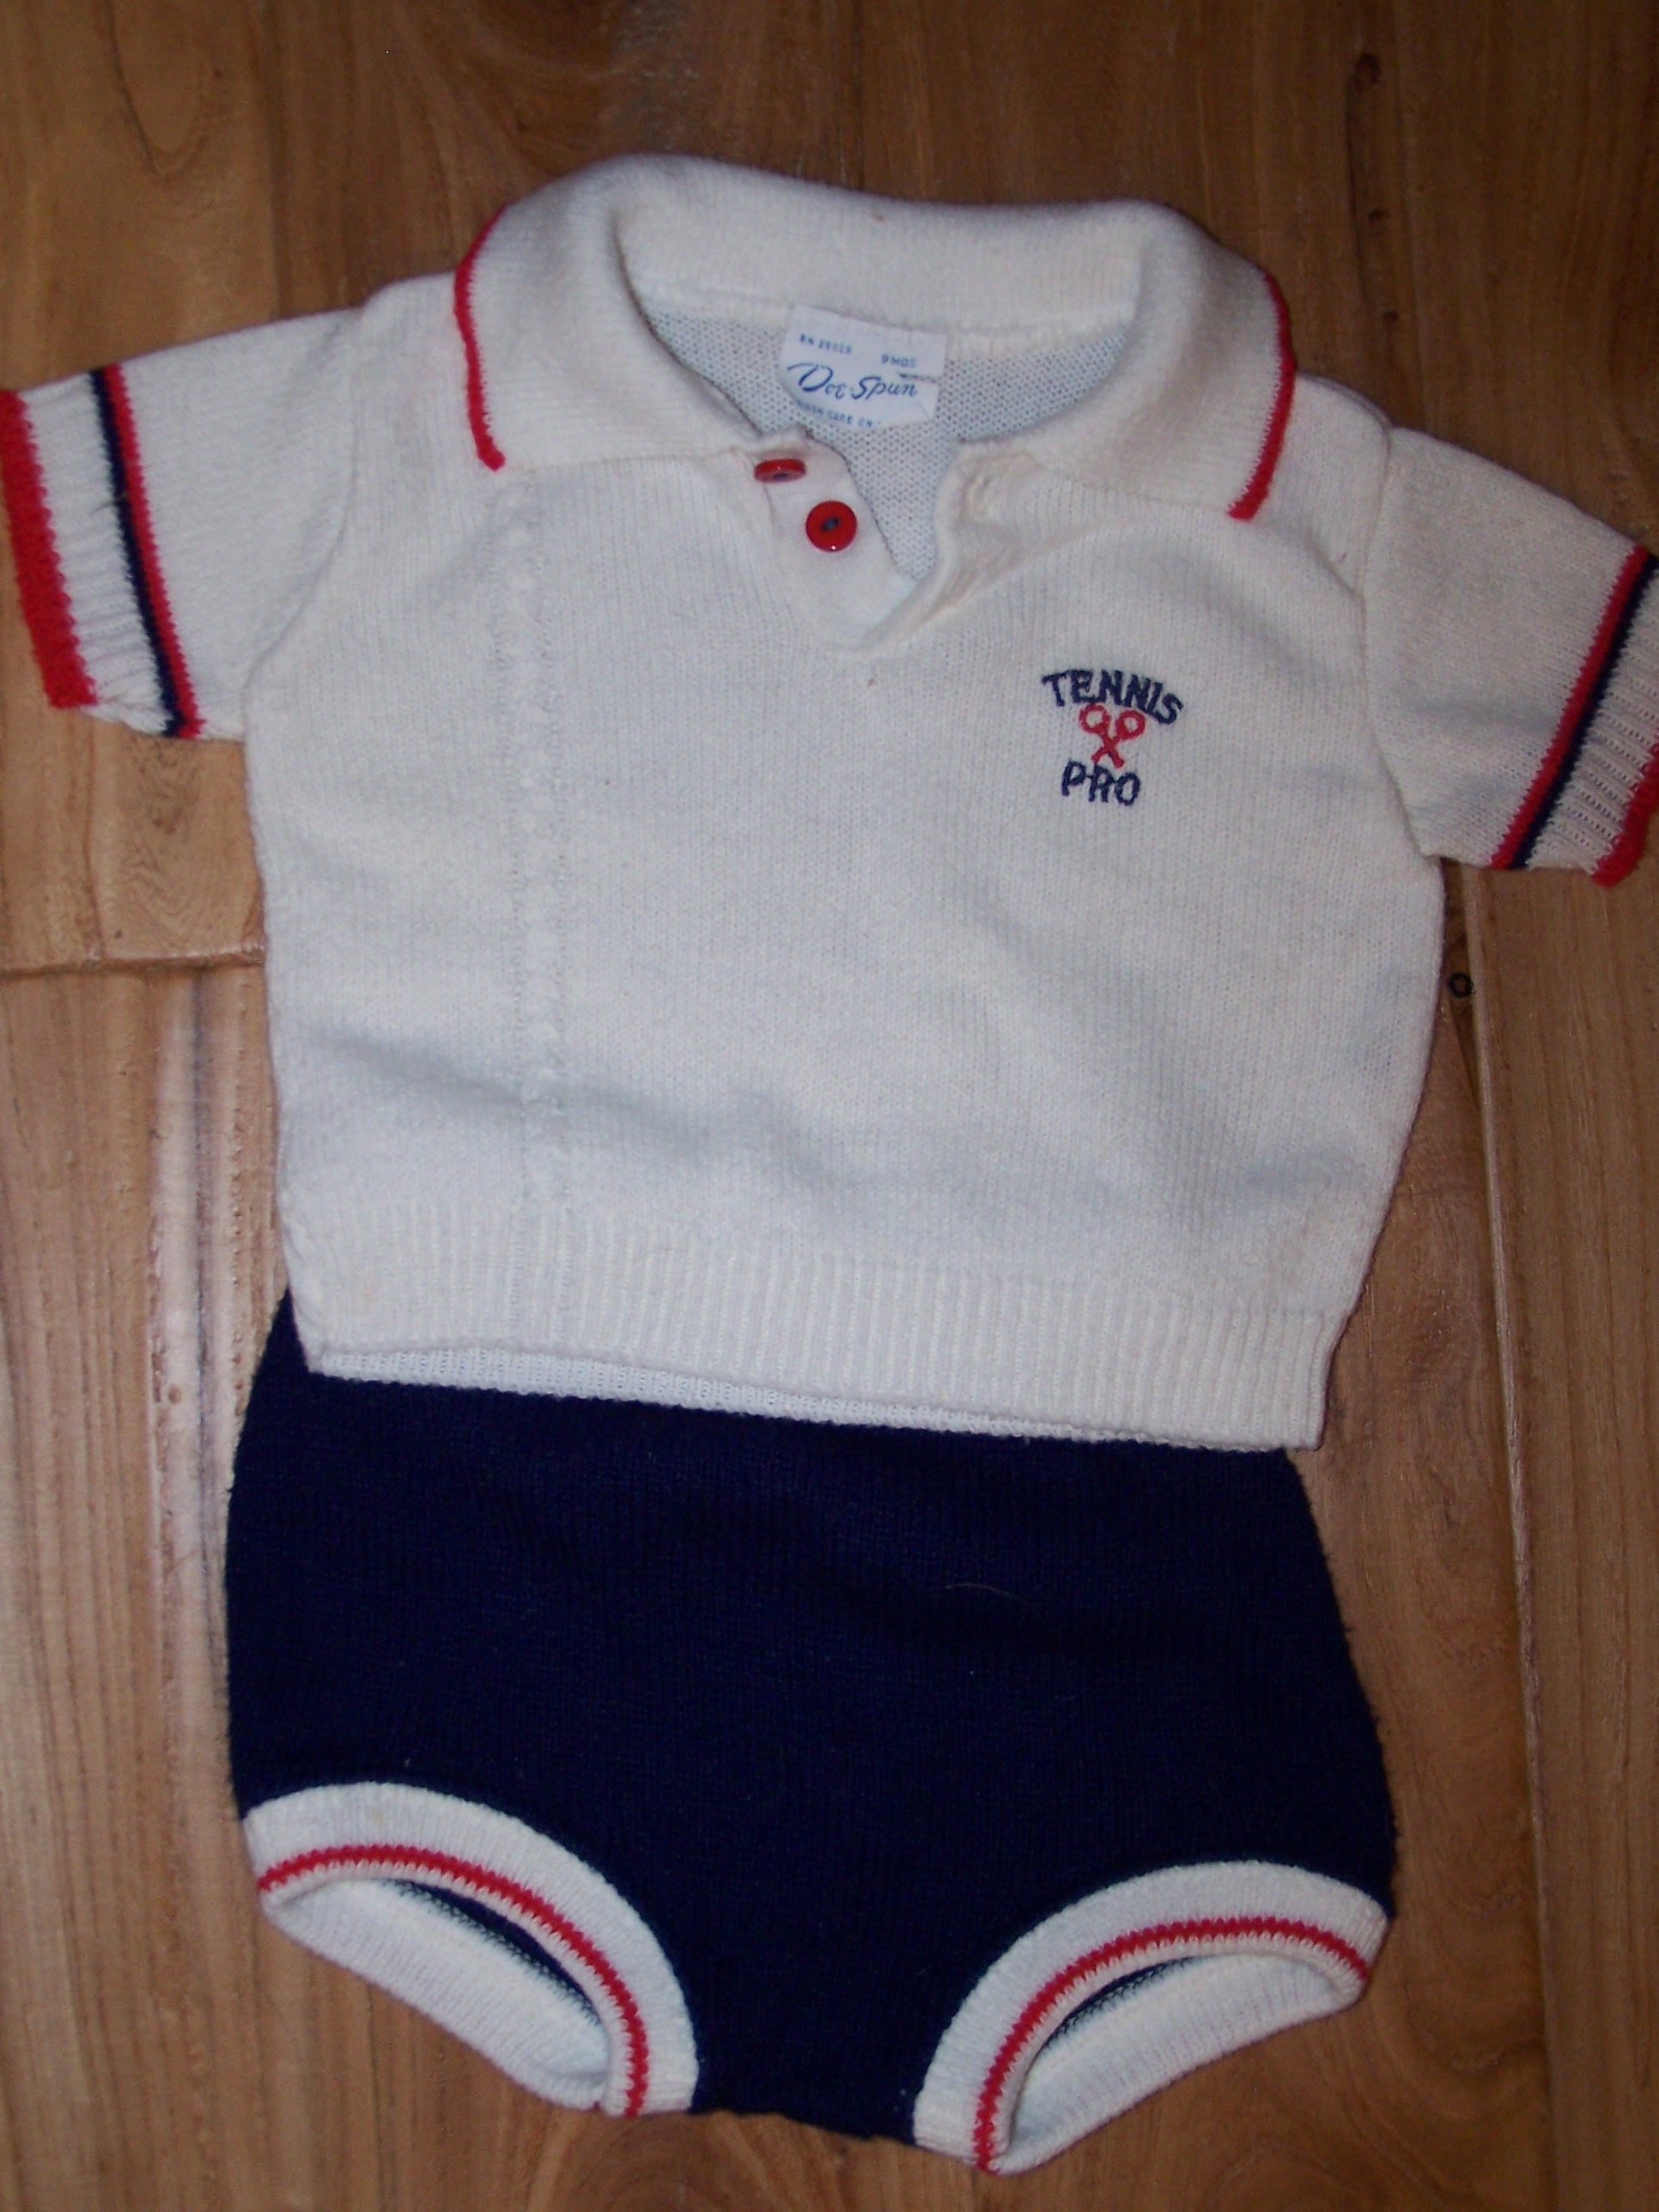 Tennis Pro Sweater Set - Size 9m